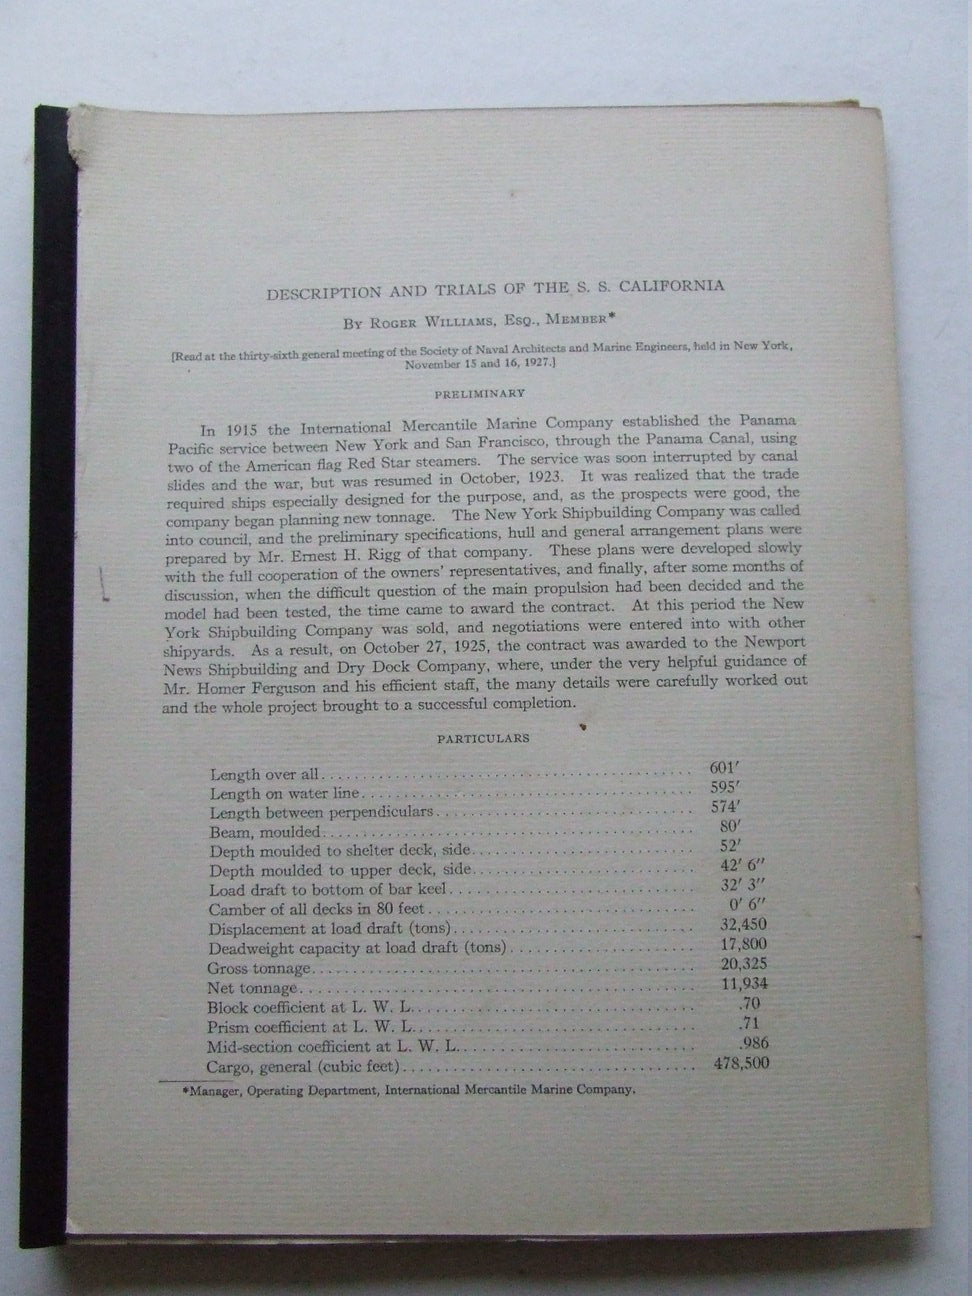 Description and Trials of the s.s. California